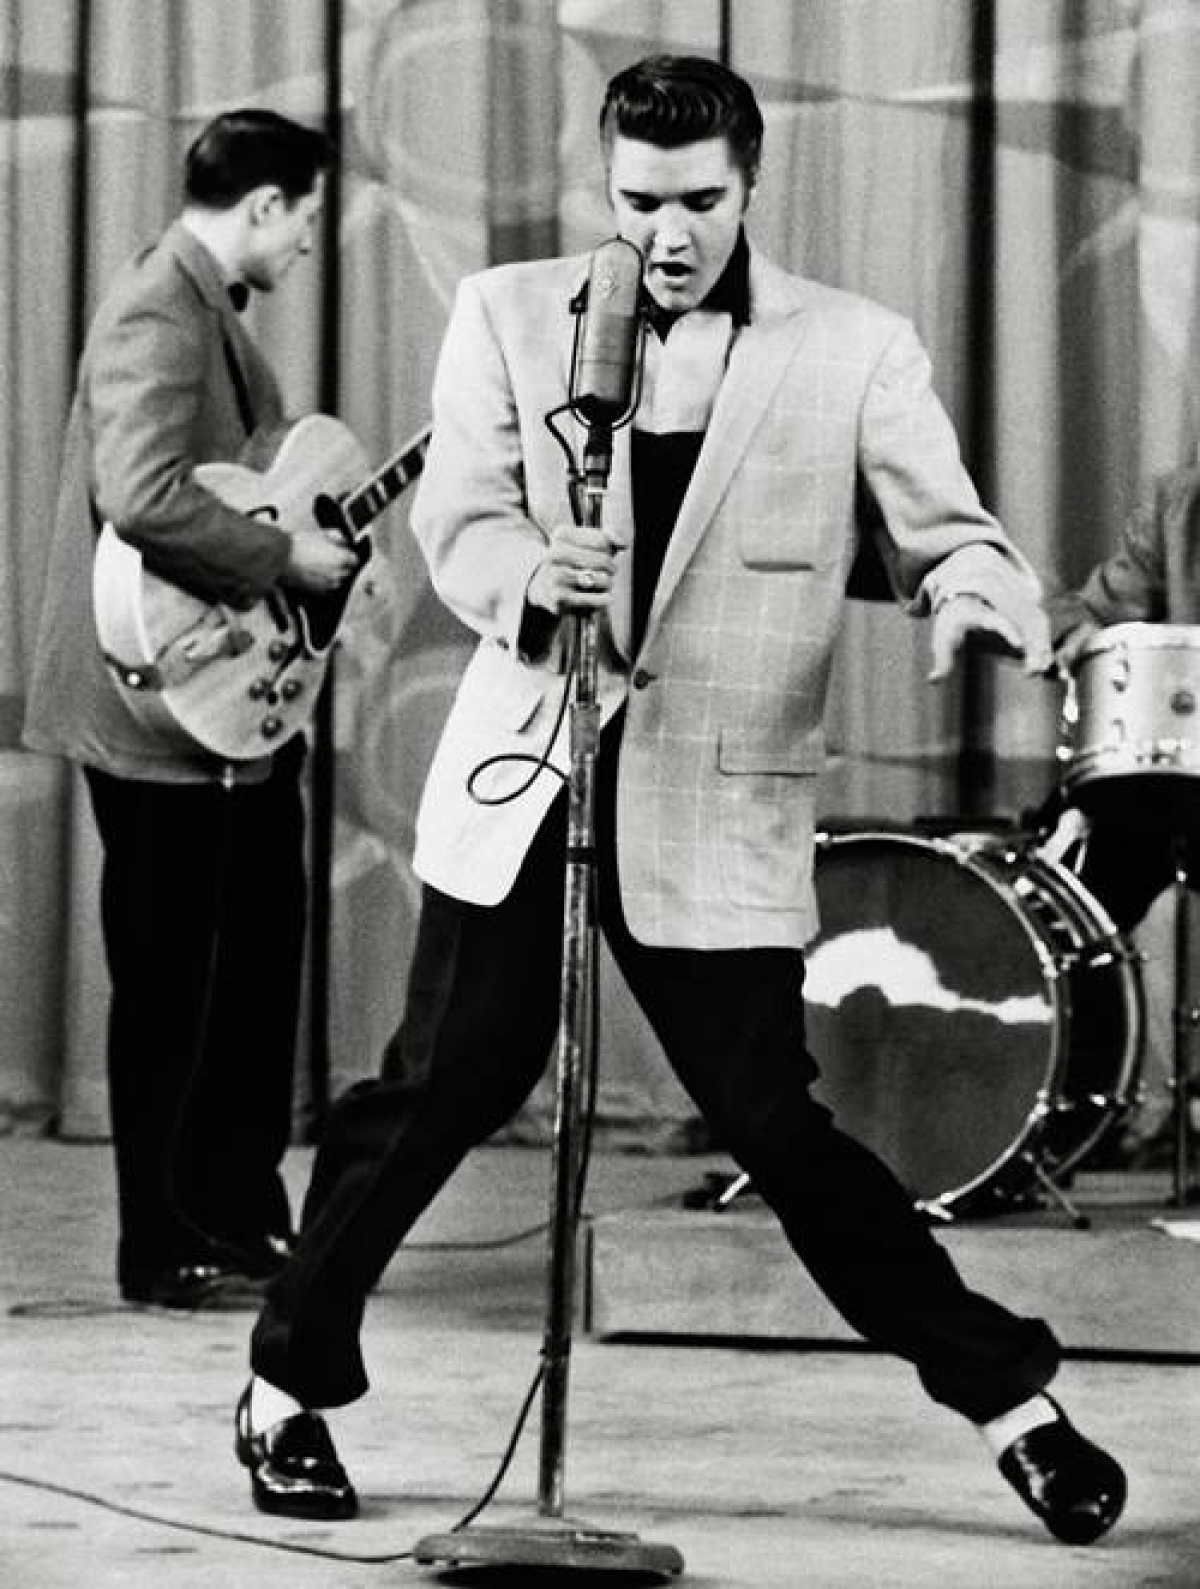 Elvis Presley dance moves were considered provocative